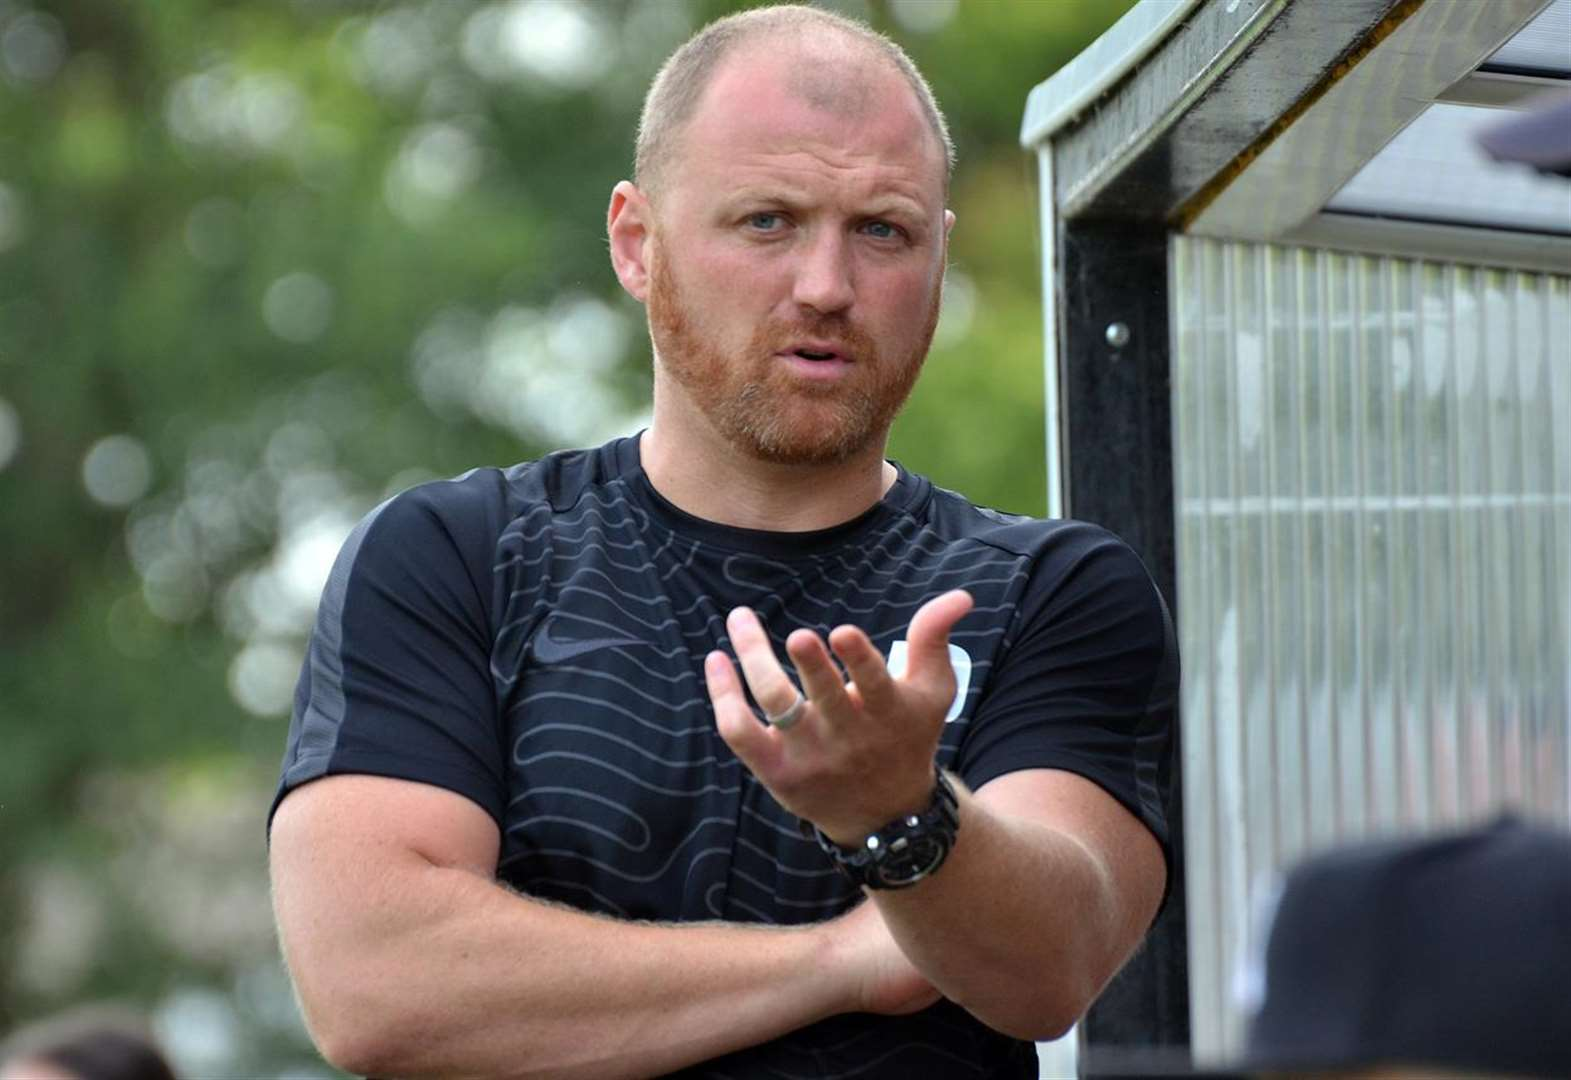 FOOTBALL: Unbeaten run is over for Pinchbeck United